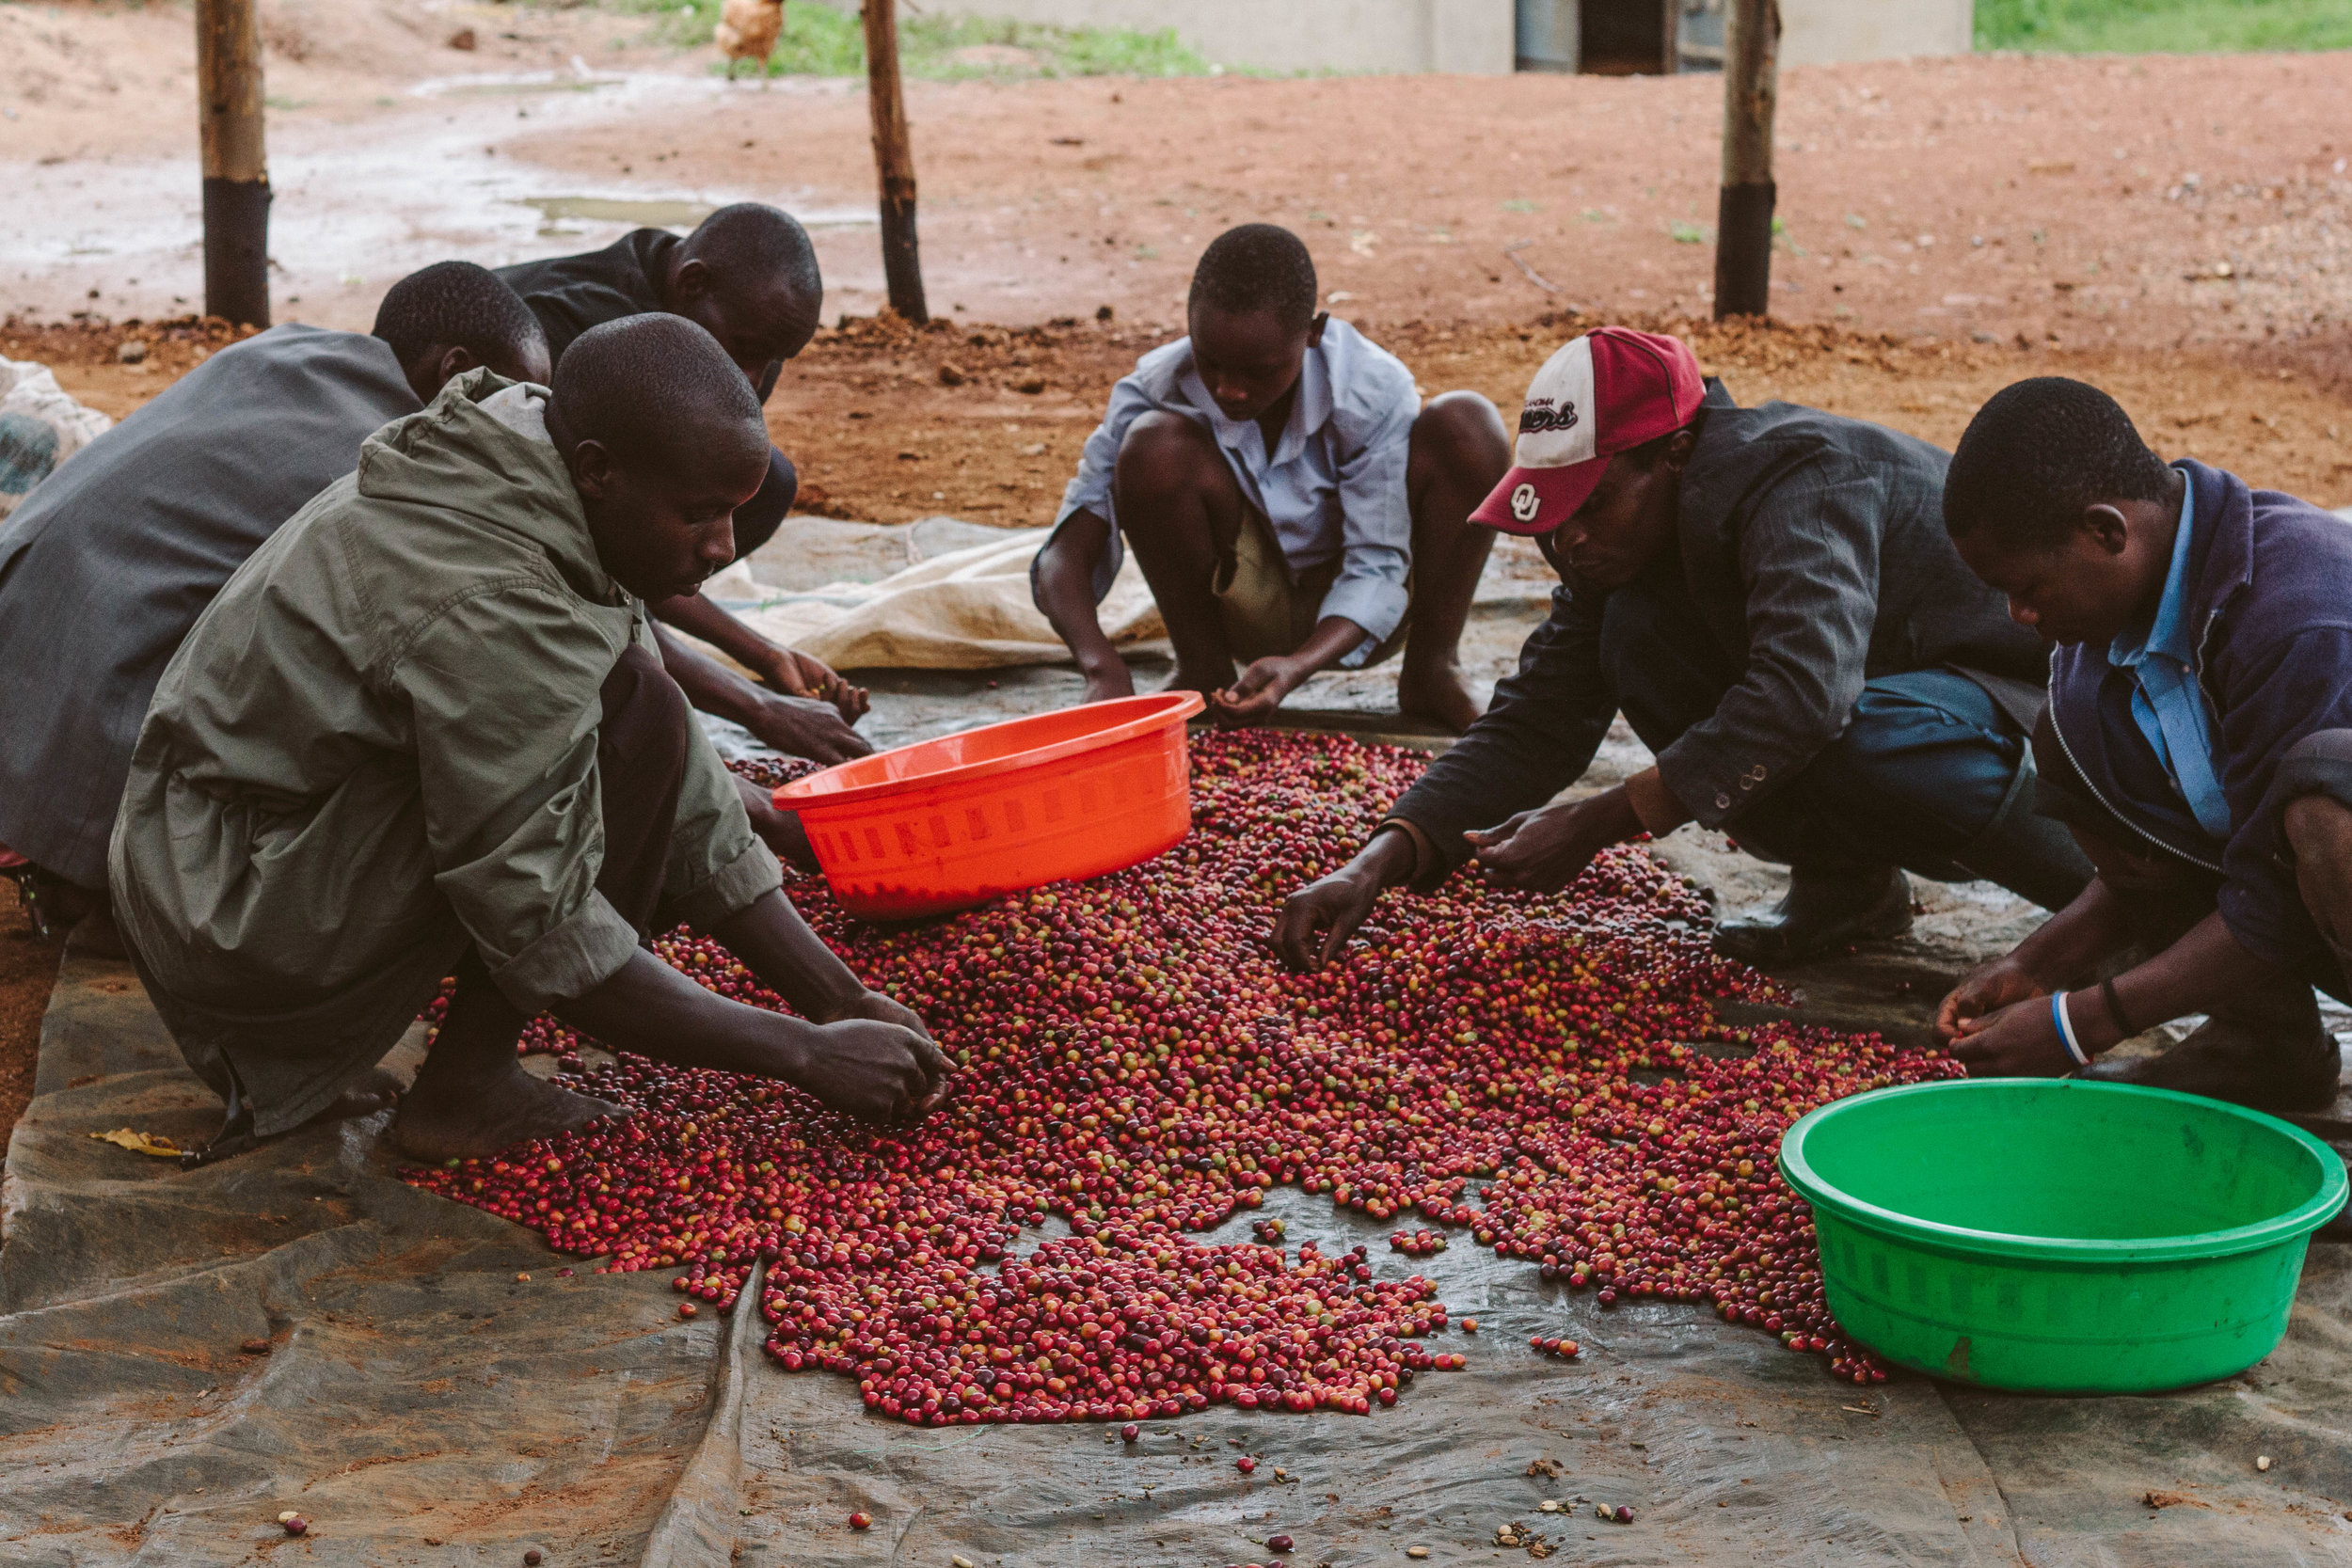 Farmers working with Zukuka Bora meticulously select the best cherries